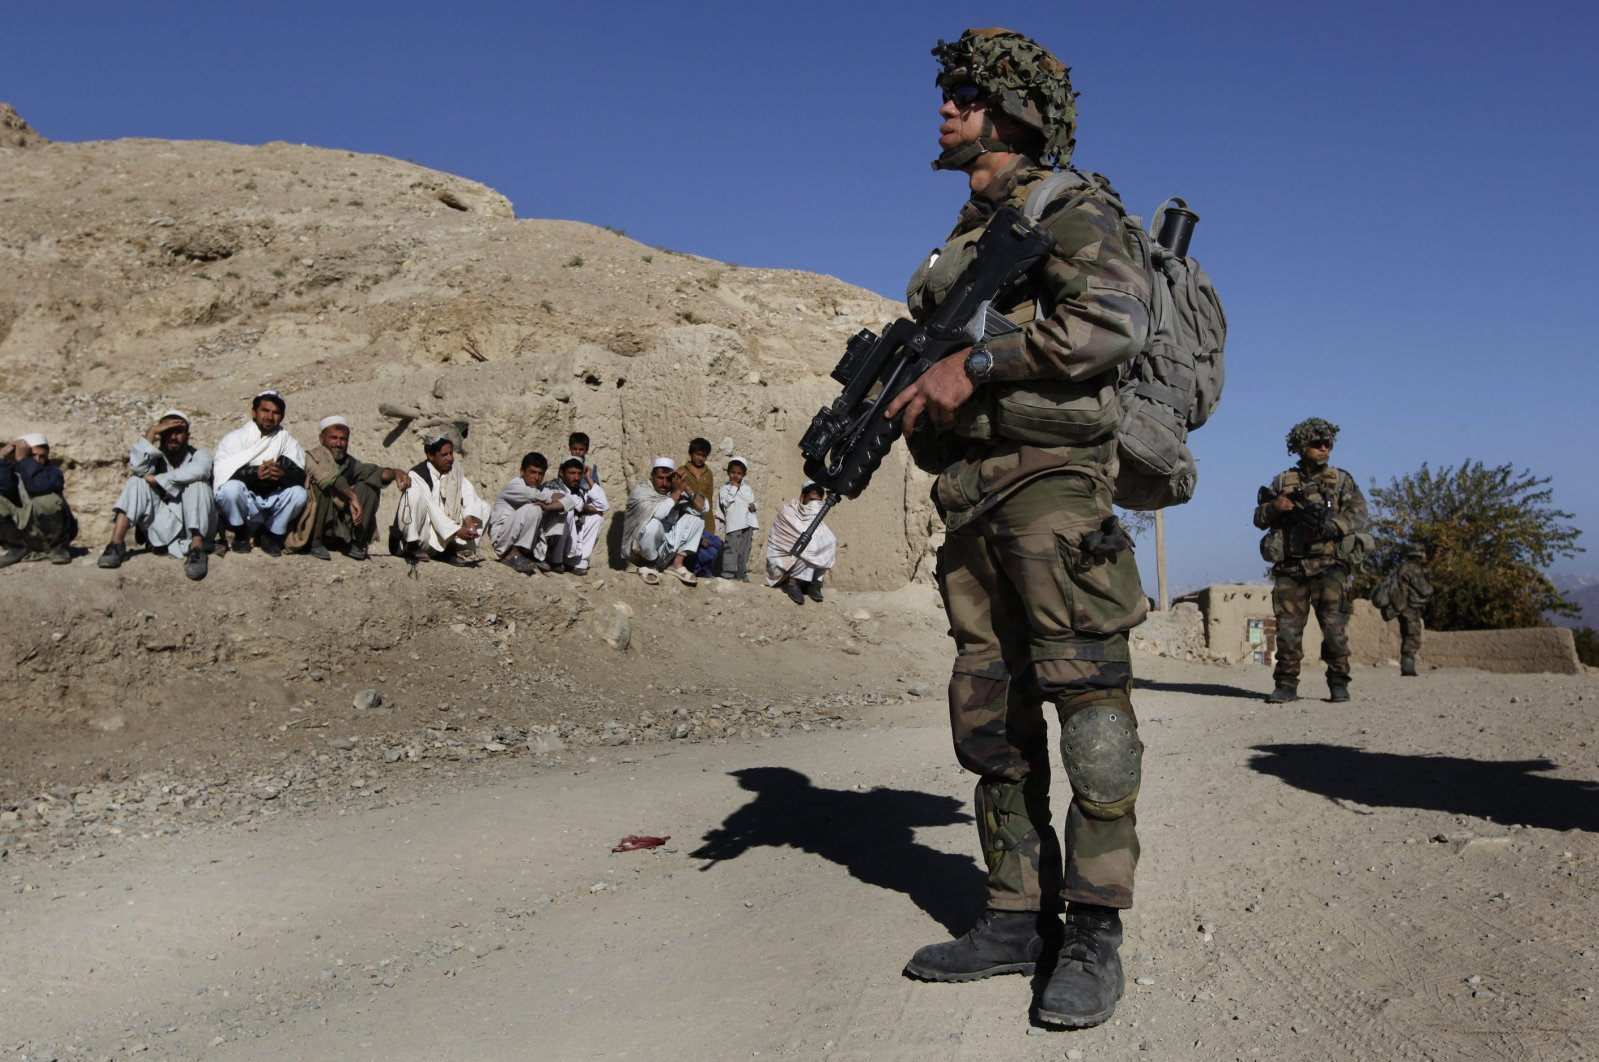 NATO soldiers patrol as Afghan men look on during an operation in the Tagab Valley, Nov. 15, 2009. (AP Photo)